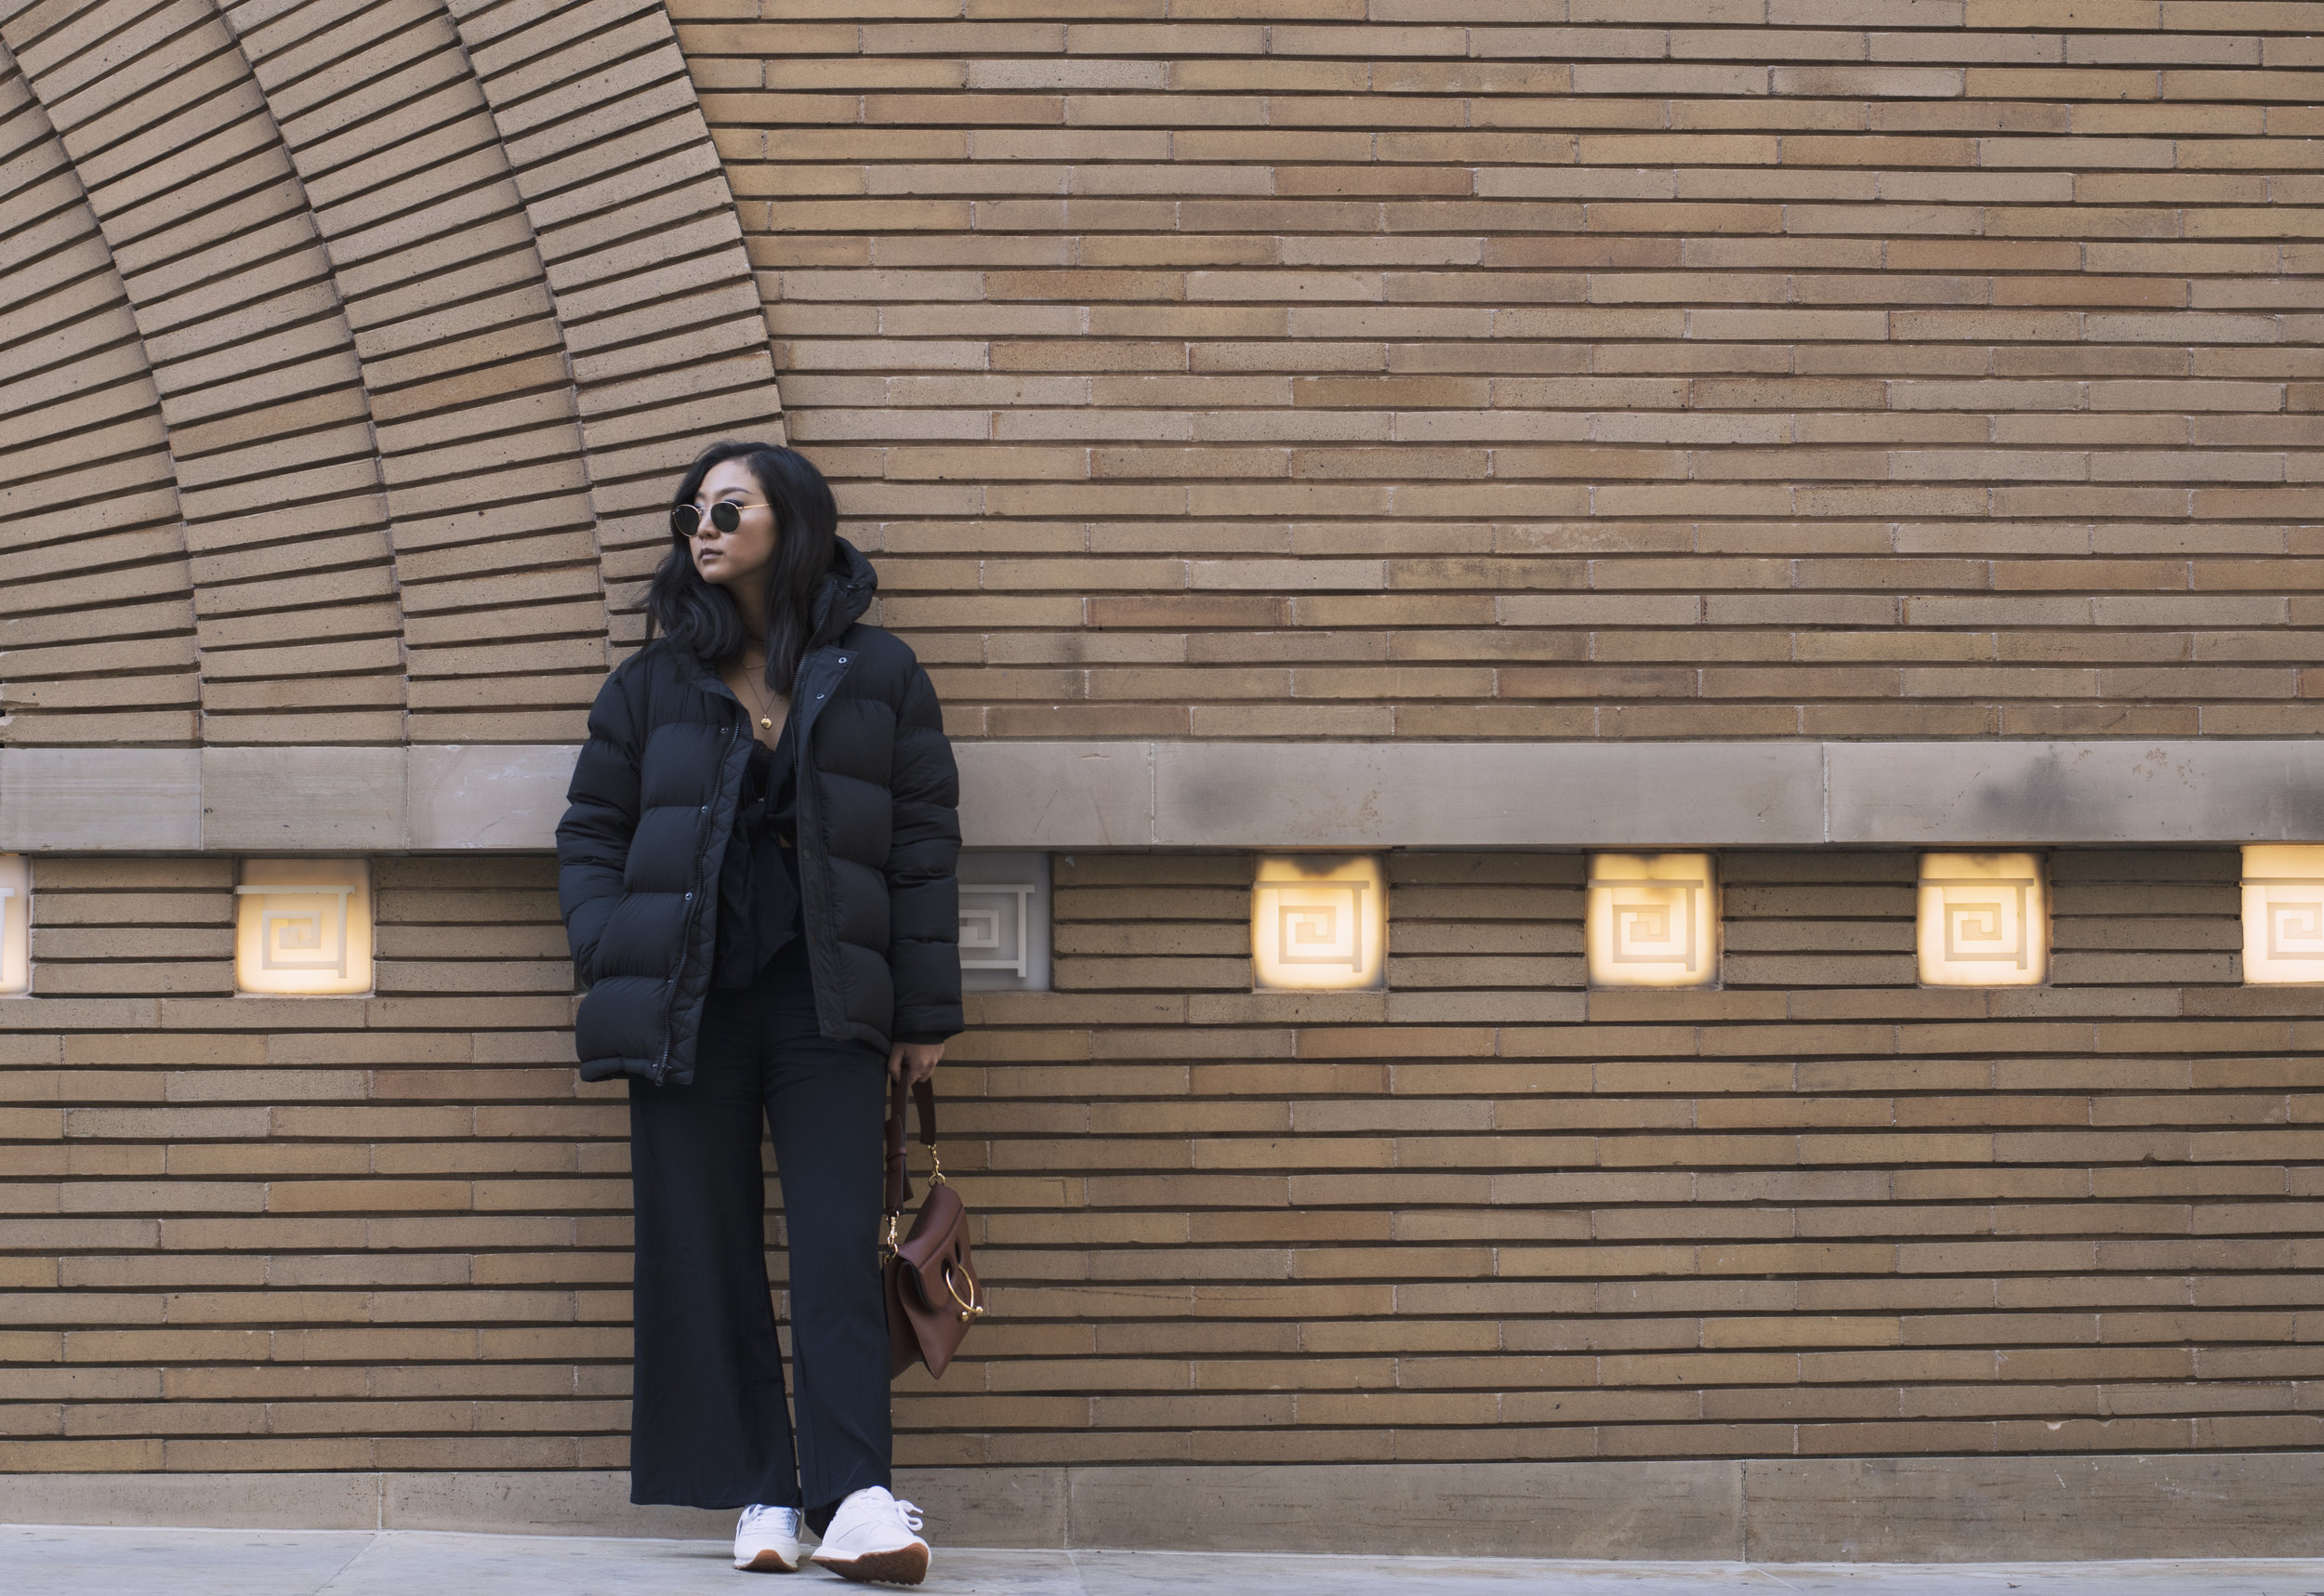 Coat: Aritzia, Jumper: Shop Isalis, Sunglasses: Ray Ban, Shoes: Reebok, Purse: JW Anderson